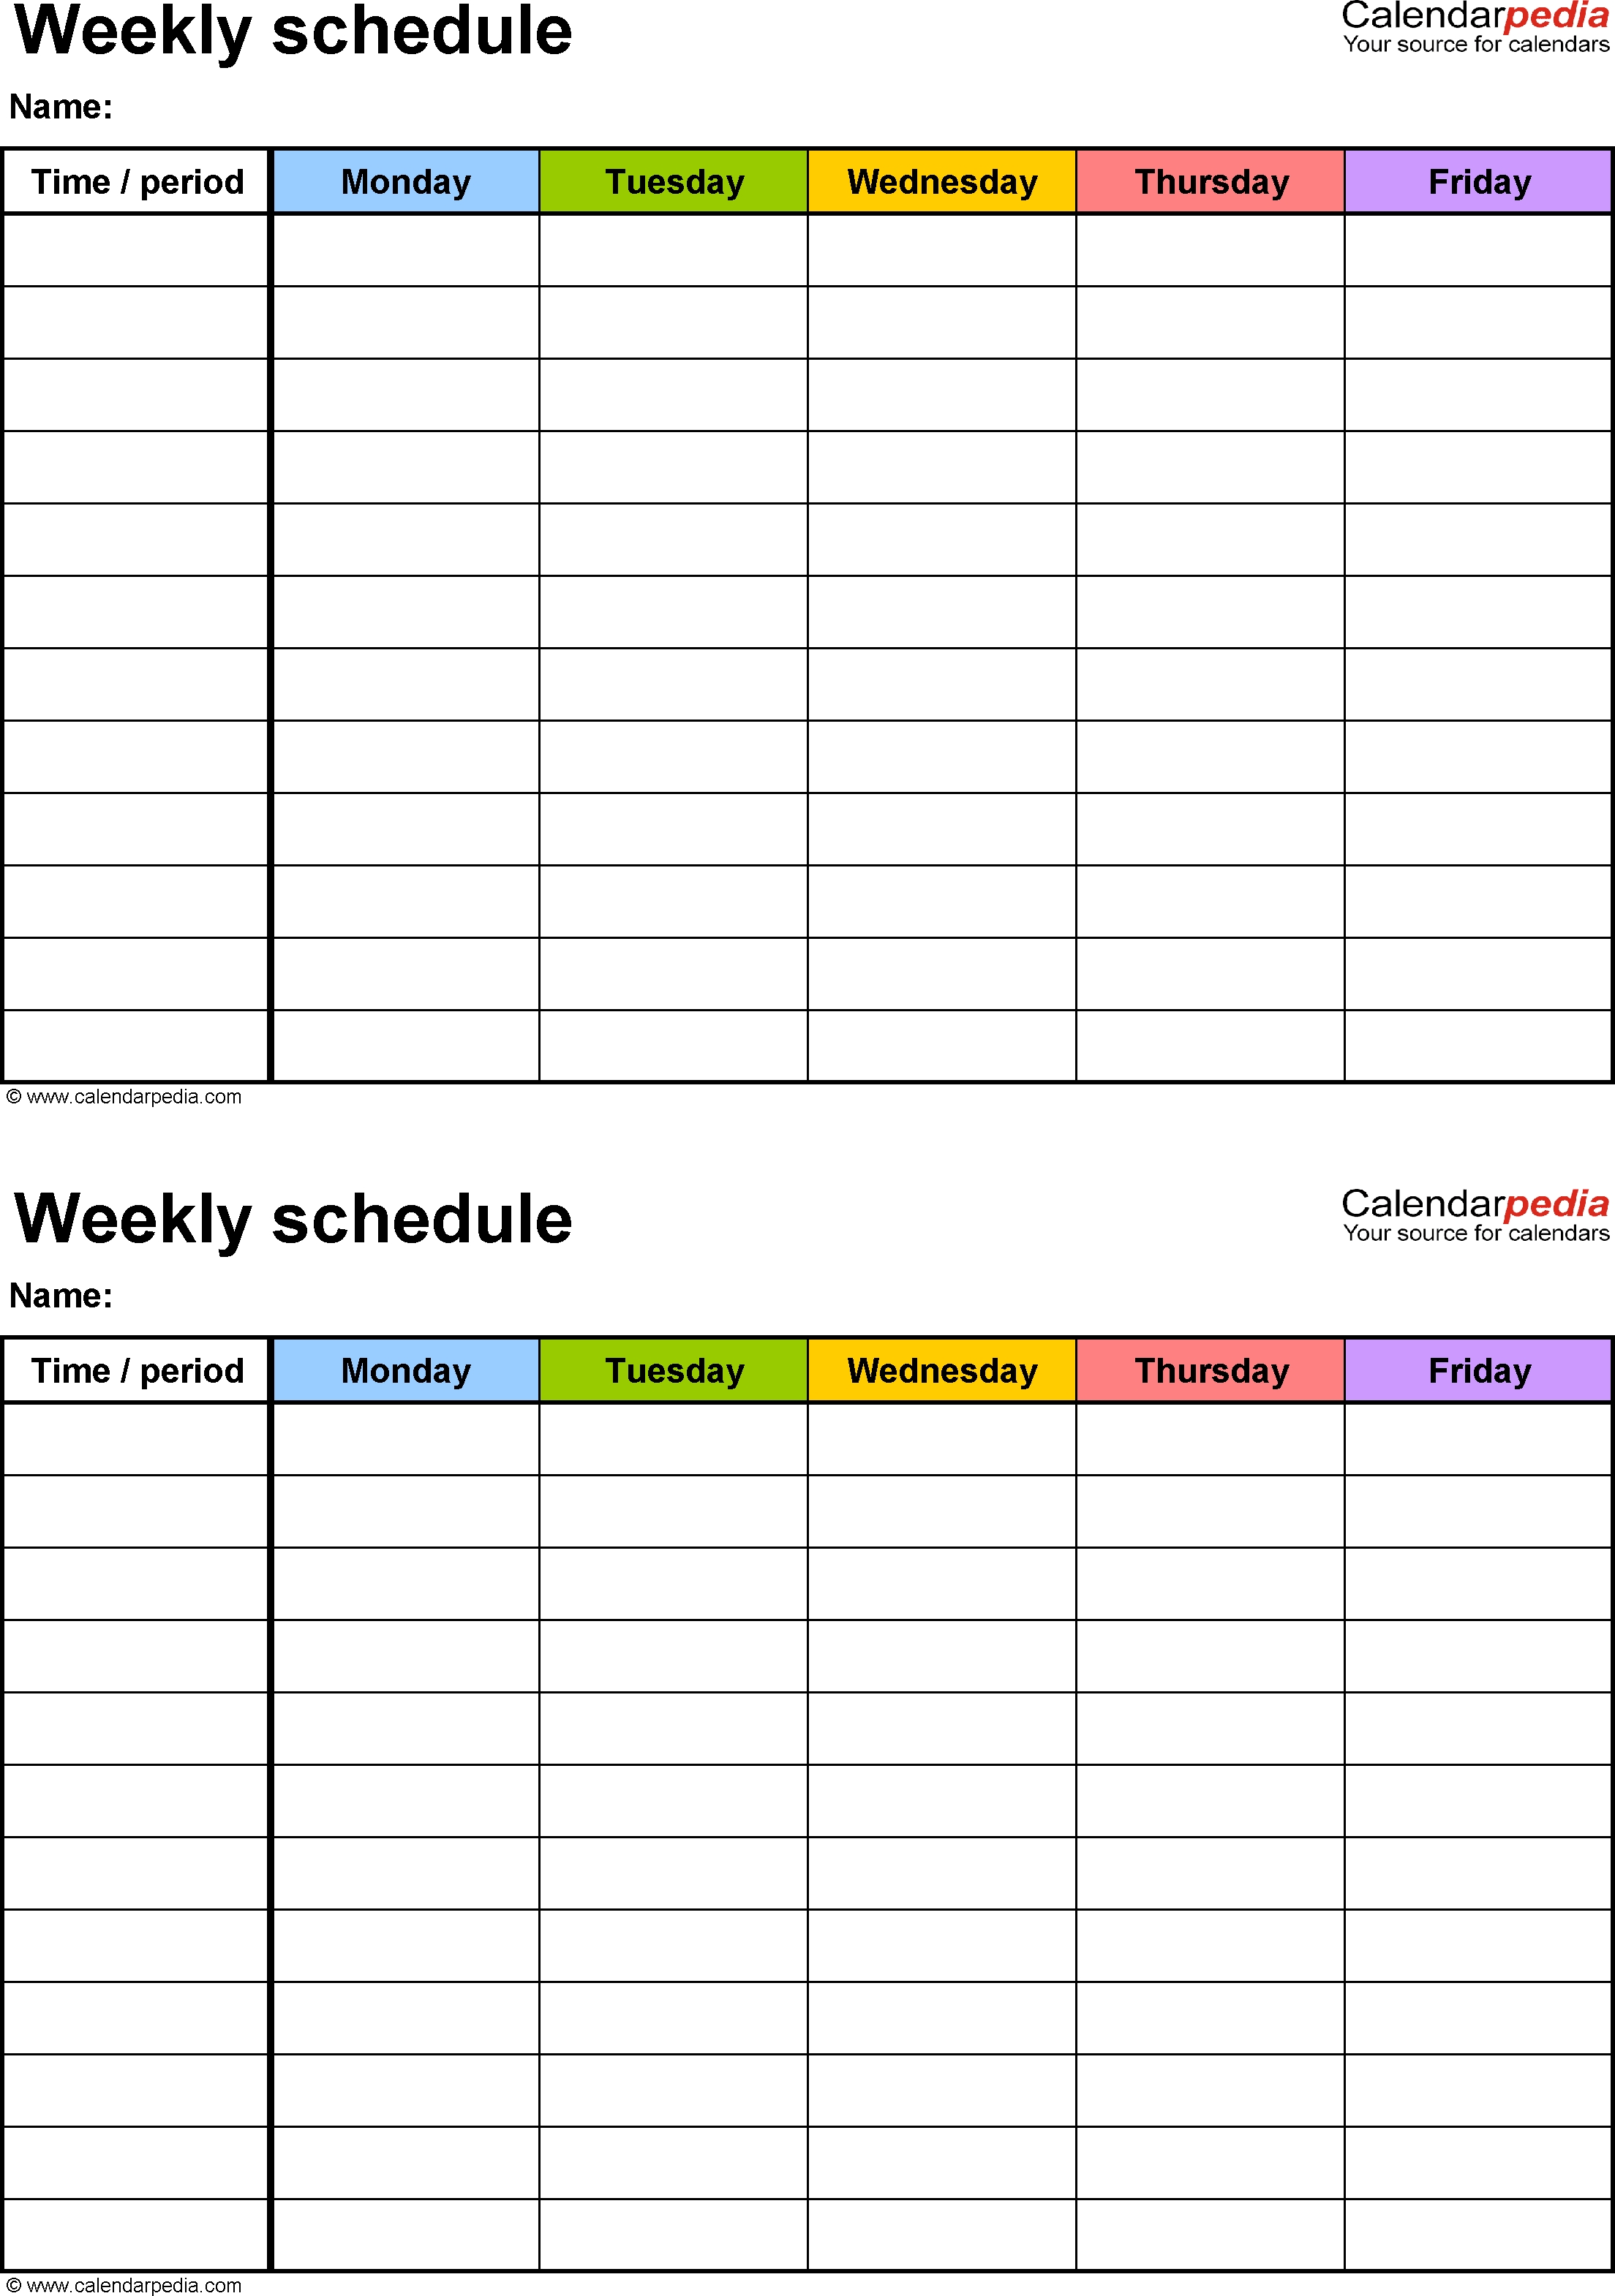 Free Weekly Schedule Templates For Pdf - 18 Templates within Free Printable Weekly Schedule Template